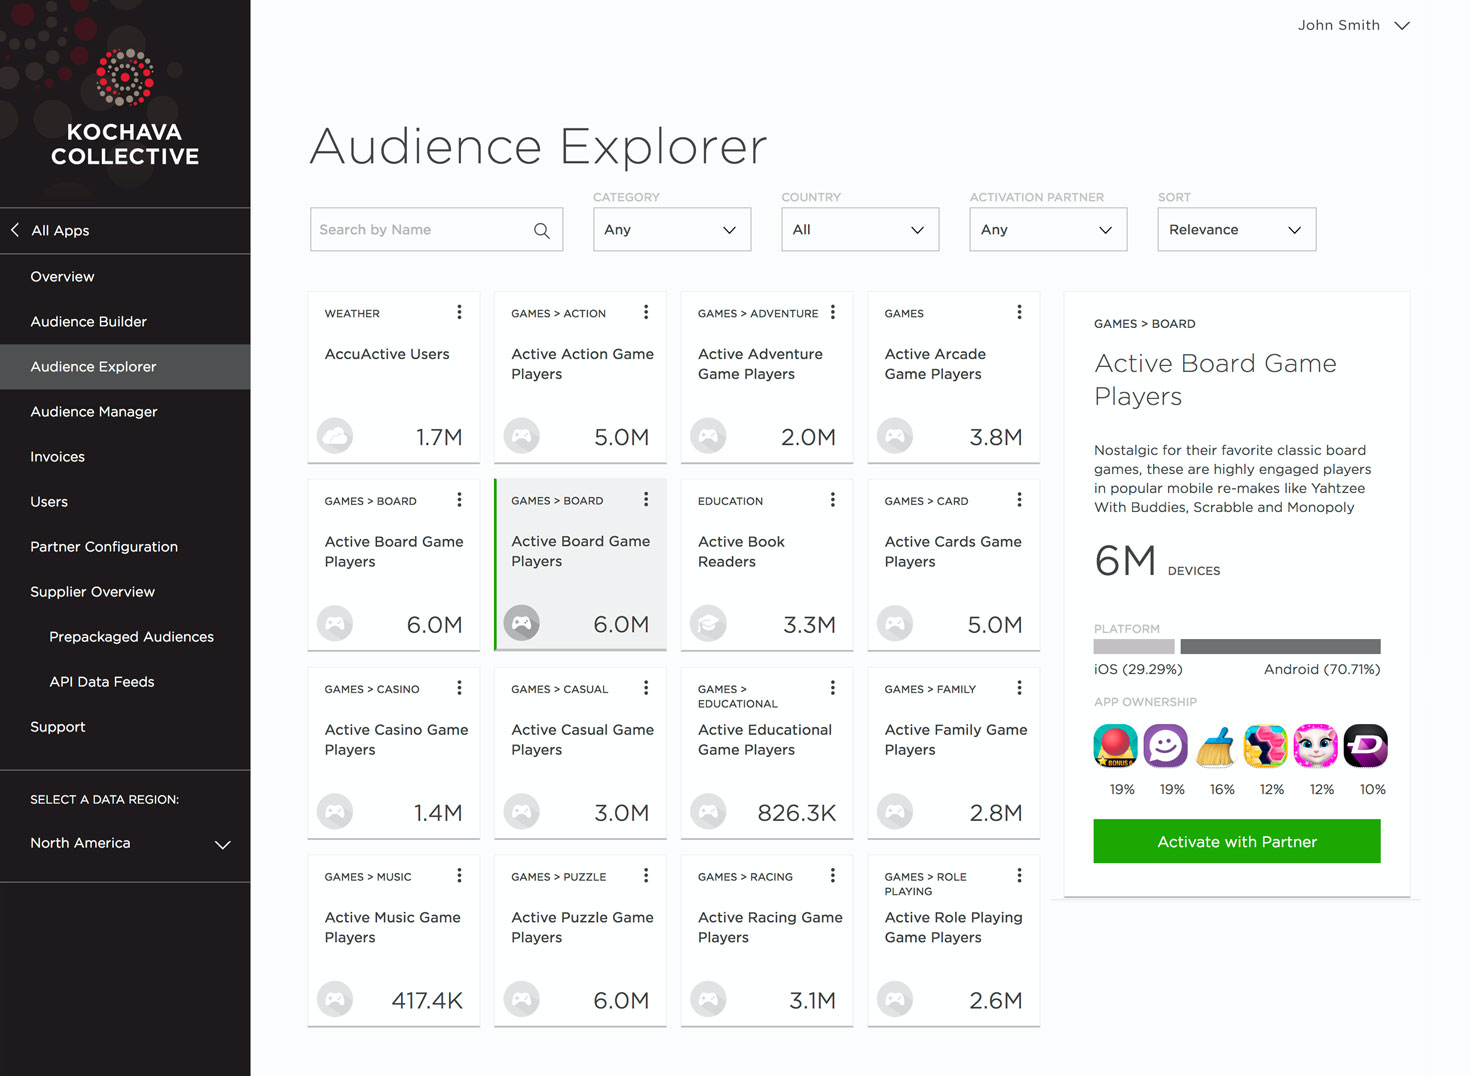 The Audience Explorer within Kochava Collective's self service interface allows audiences to be searched and filtered by attributes such as category, country, and activation partners